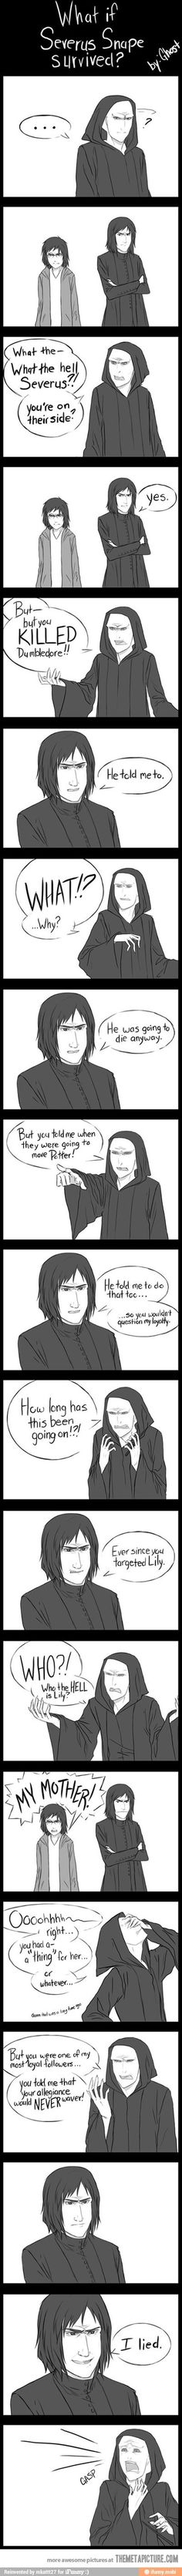 What If Severus Snape Survived? [Comic What If Severus Snape Survived? , What If Severus Snape Survived? I chuckled. I chuckled. Harry Potter Universe, Arte Do Harry Potter, Yer A Wizard Harry, Harry Potter Fandom, Harry Potter Comics, Severus Hermione, Severus Rogue, Draco Malfoy, Hermione Granger